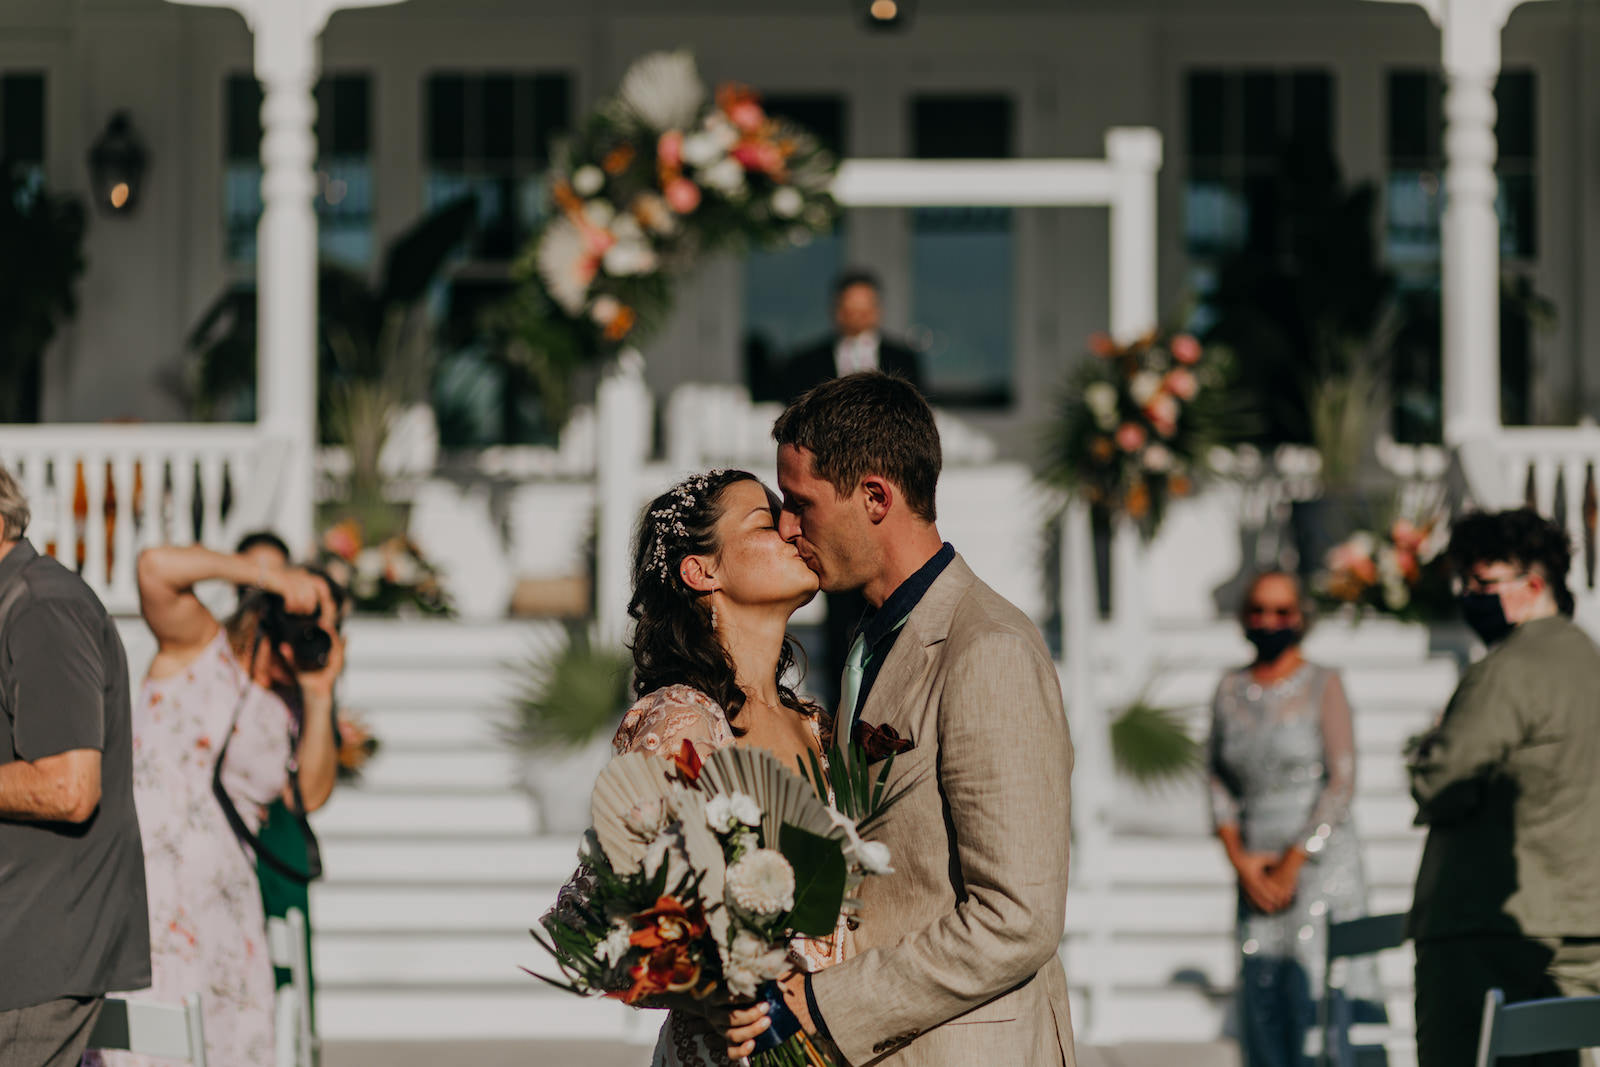 Outdoor Staircase Wedding Ceremony Bride and Groom Portrait on Belleview Inn Staircase   Boho Gold Bronze Embroidered Overlay Wedding Dress Bridal Gown with Illusion Sleeves and Train   Groom in Grey Khaki Linen Suit   Tropical Boho Bridal Bouquet and White Arch Backdrop with Palm Frond Leaf Coral Orange Pink and Greenery Floral Arrangements